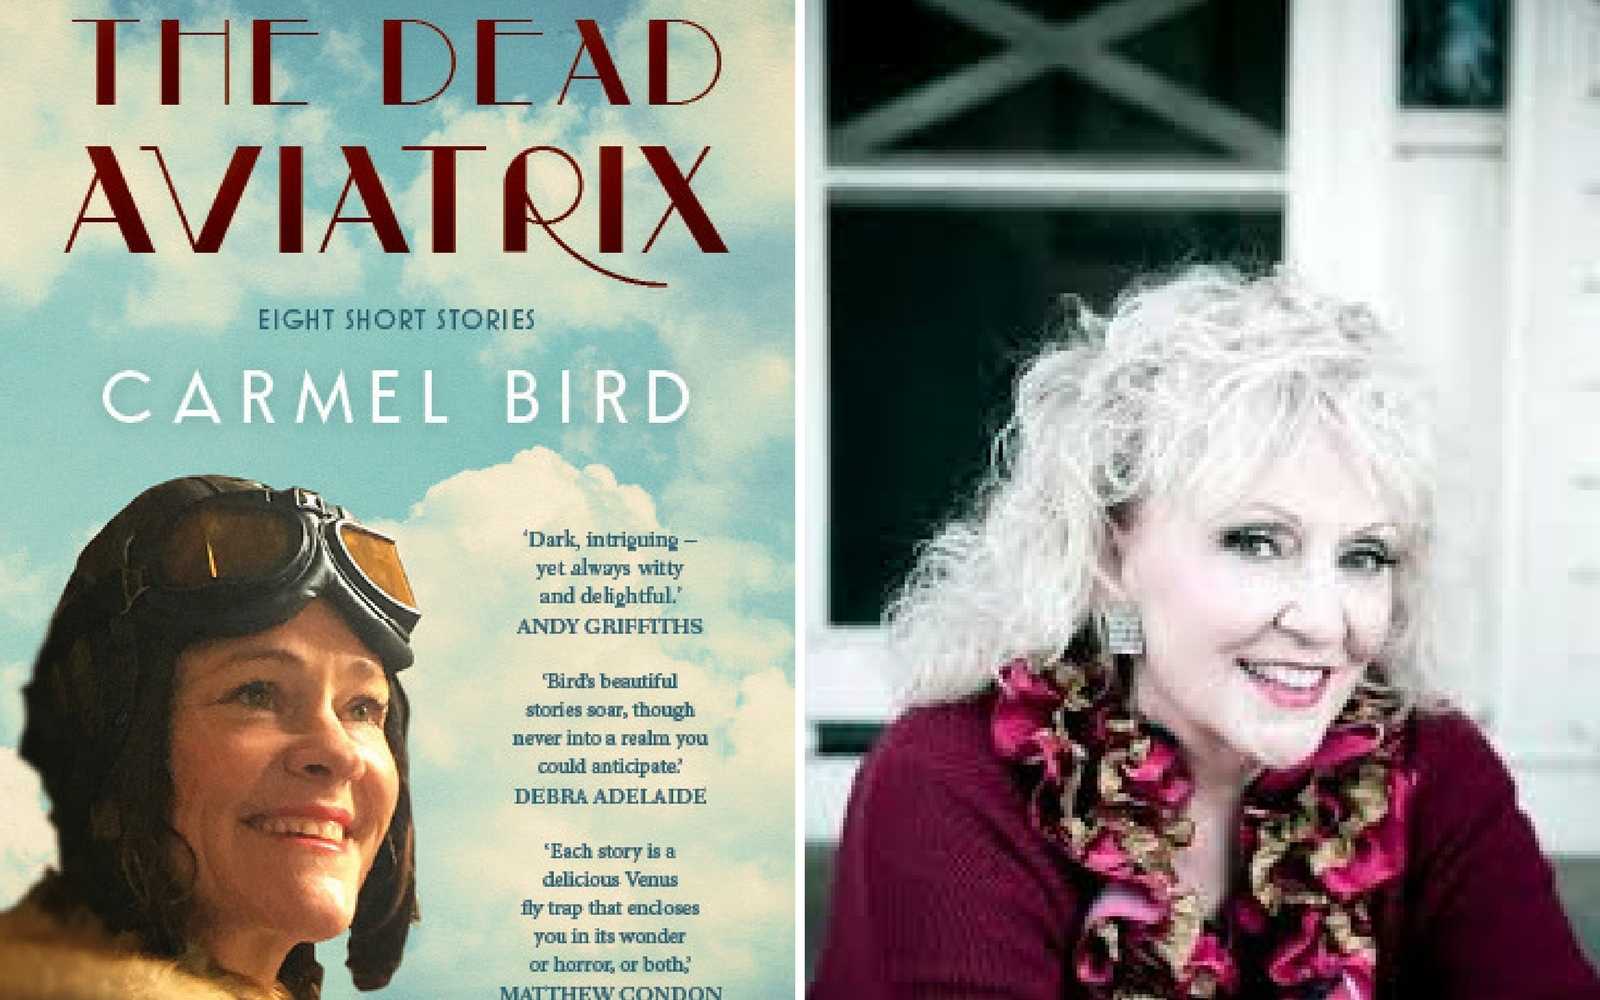 The Dead Aviatrix Carmel Bird EIGHT SHORT STORIES